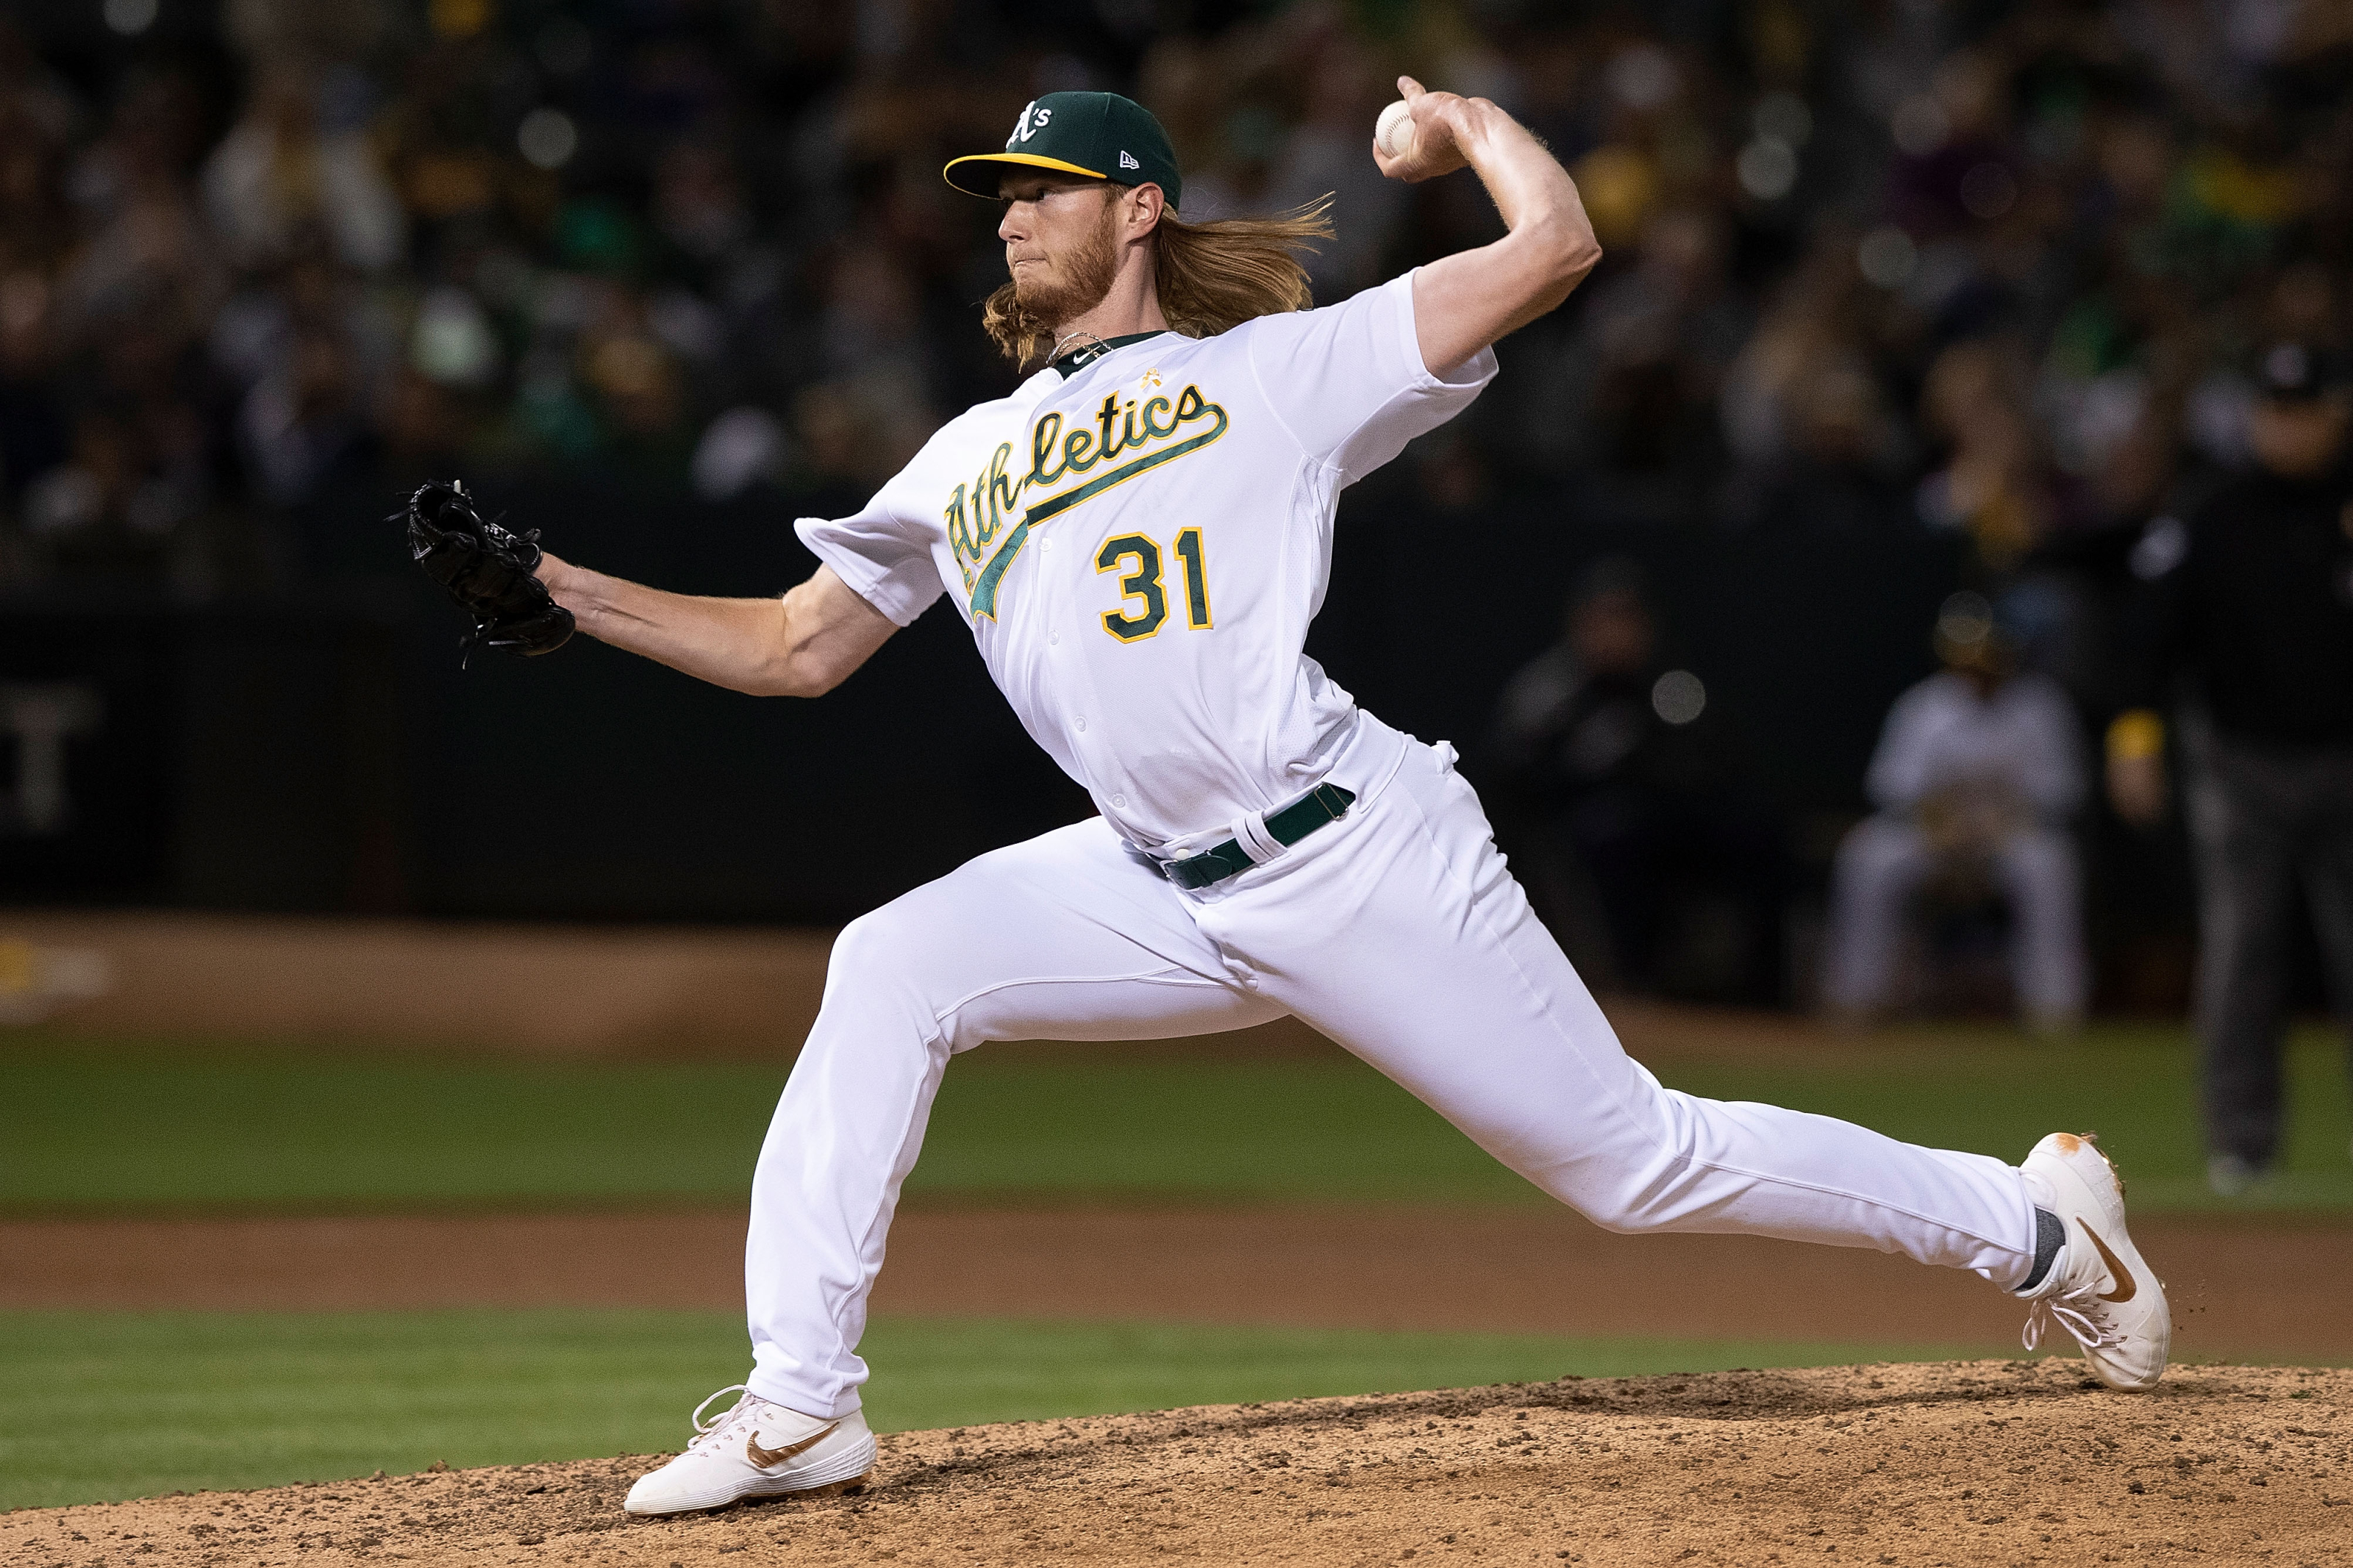 Oakland Athletics: Delayed season could be good news for A.J. Puk